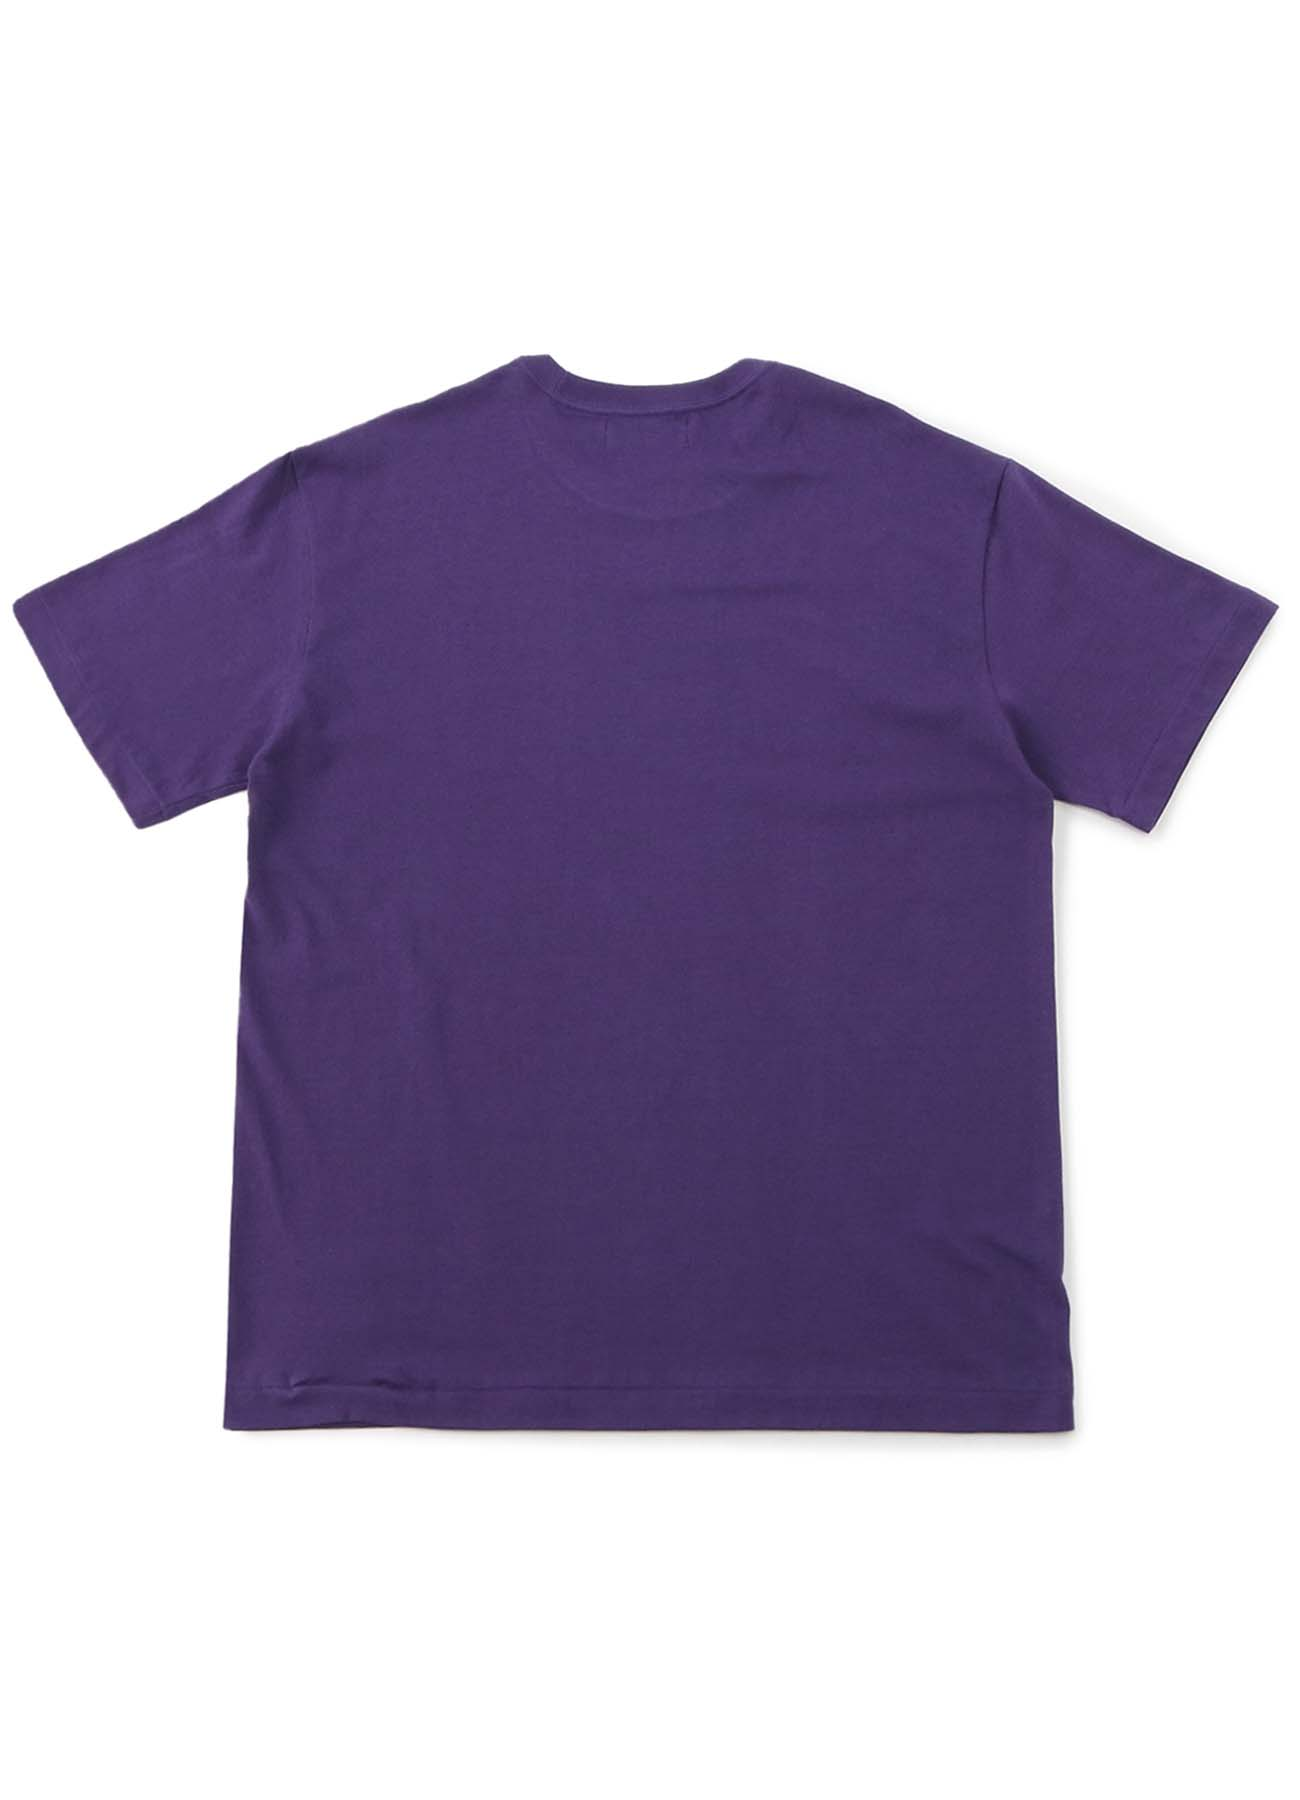 THE SHOP Limited product Y's logo T-shirt